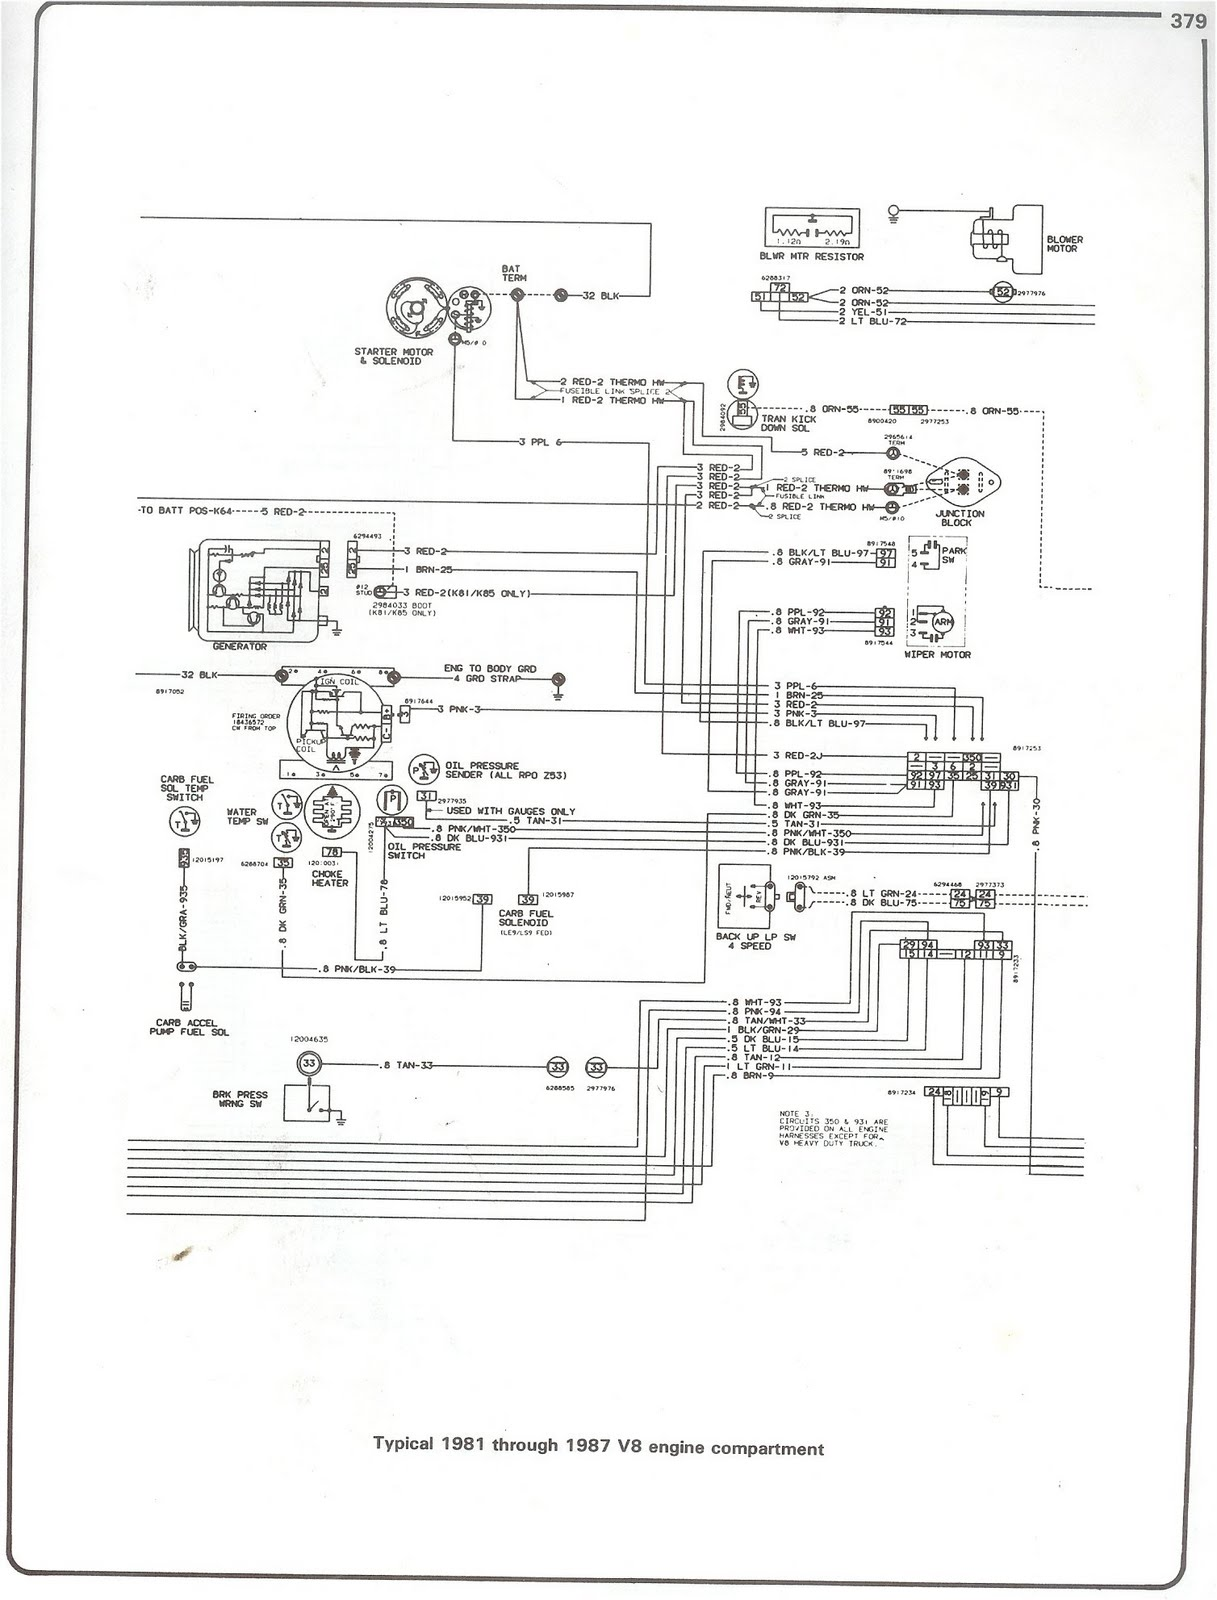 small resolution of 1987 chevy truck wiring harness wiring diagram post 1987 chevy truck wiring harness wiring diagram img